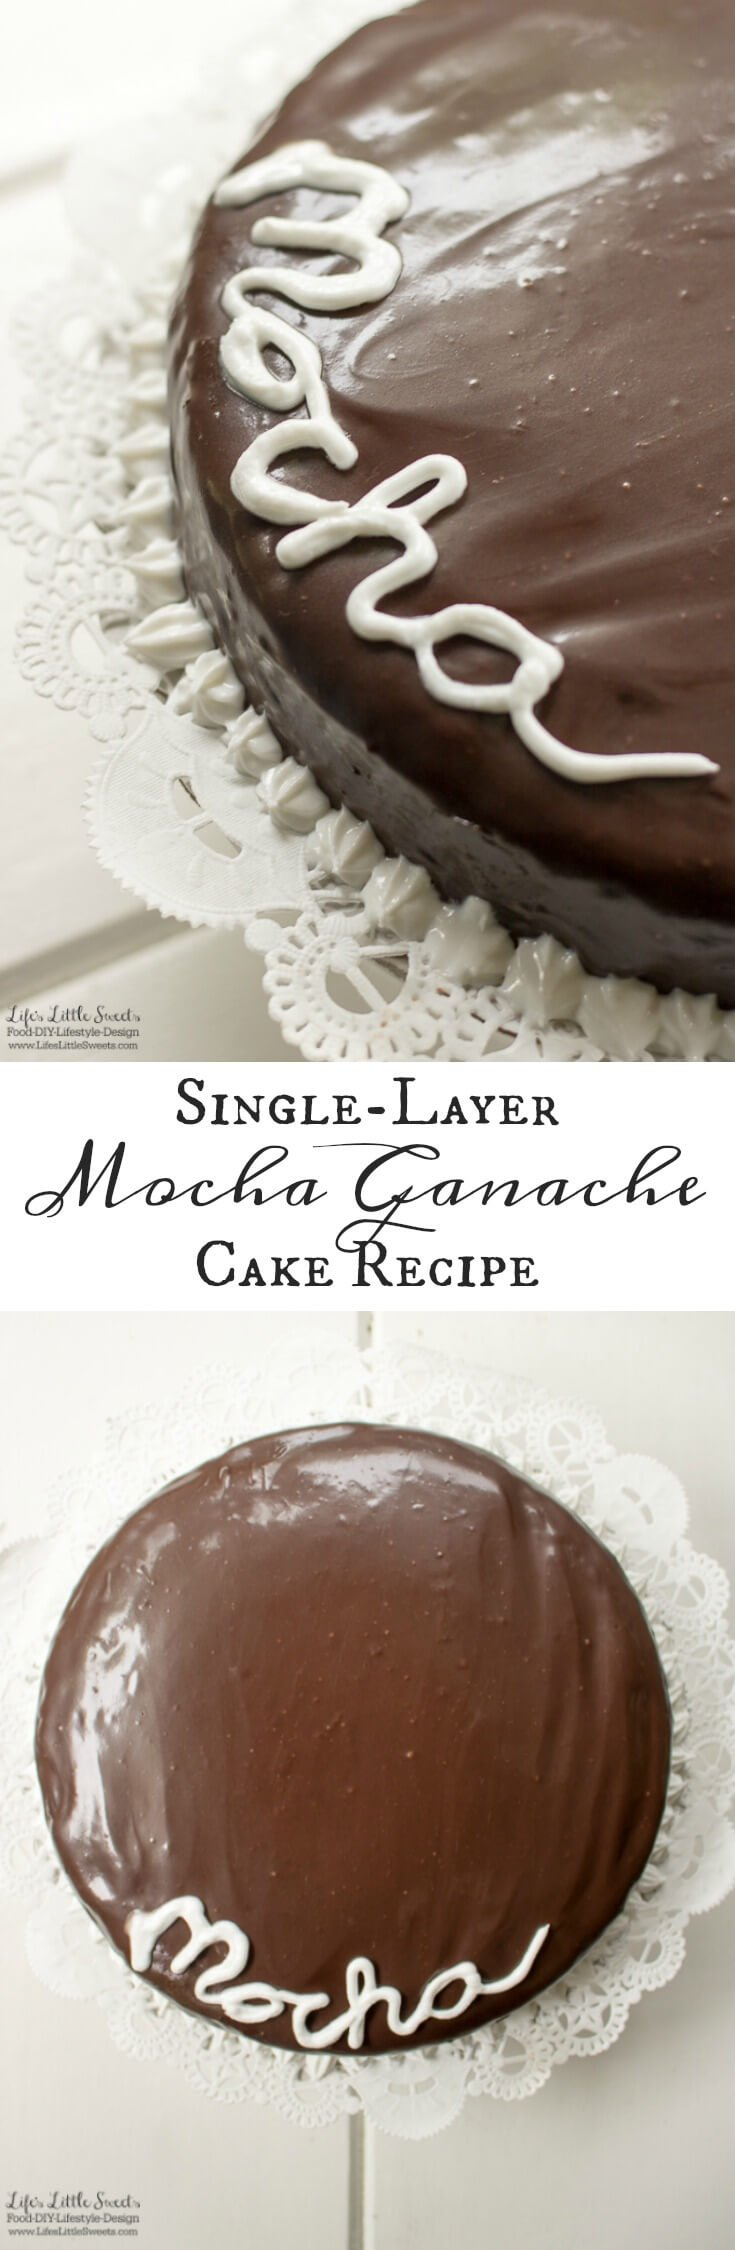 This Single-Layer Mocha Ganache Cake Recipe is a from scratch cake recipe that is easy to make. Topped with creamy and smooth mocha ganache, this mocha cake recipe is perfect for any occasion (12 slices).